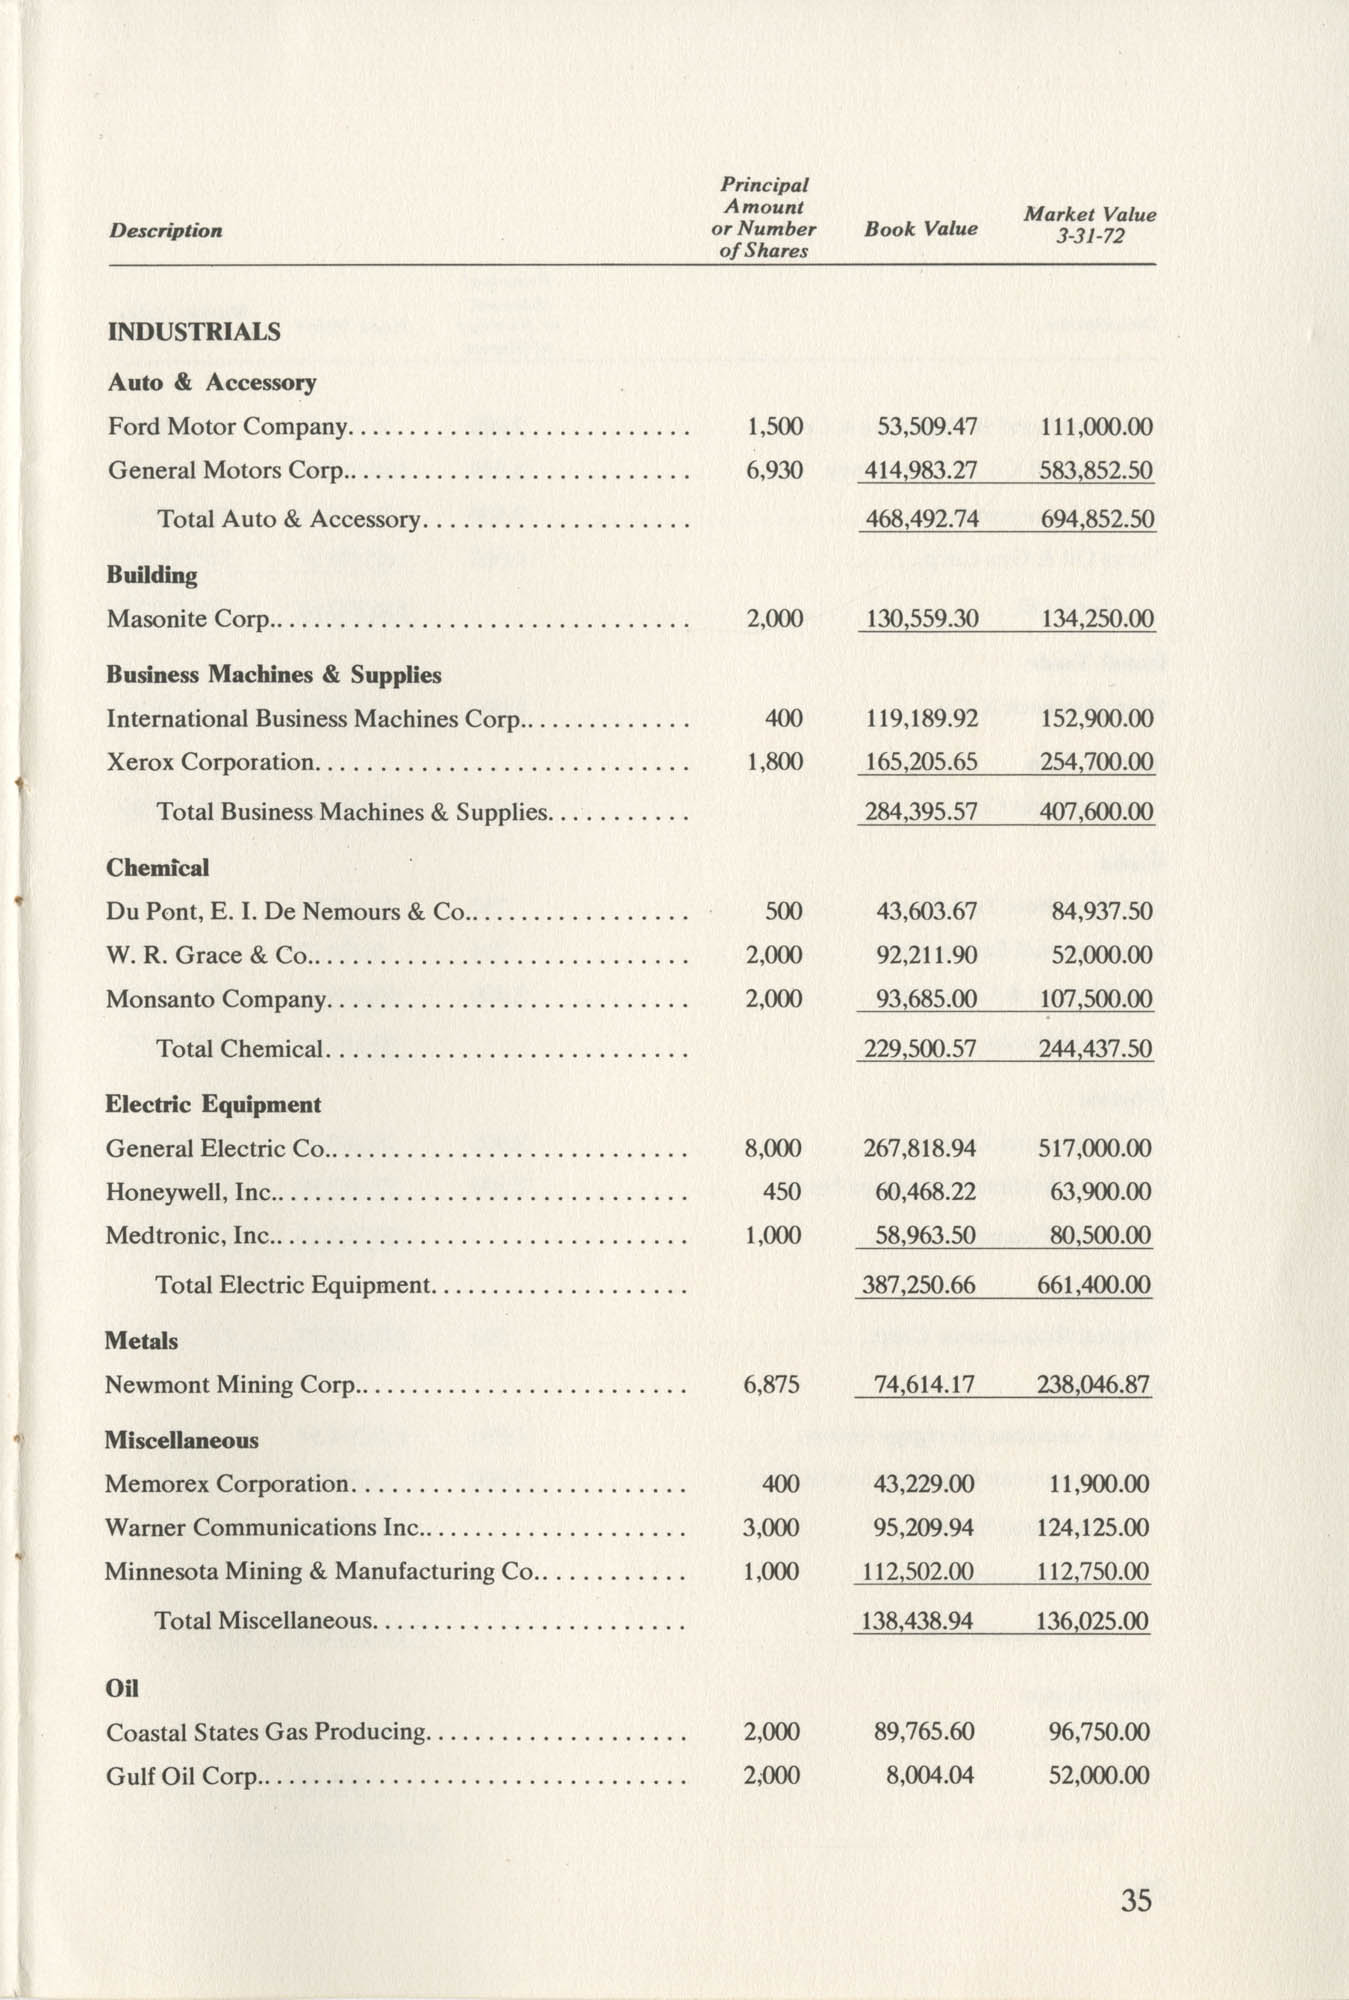 Southern Education Foundation, Annual Report 1971-1972, Page 35